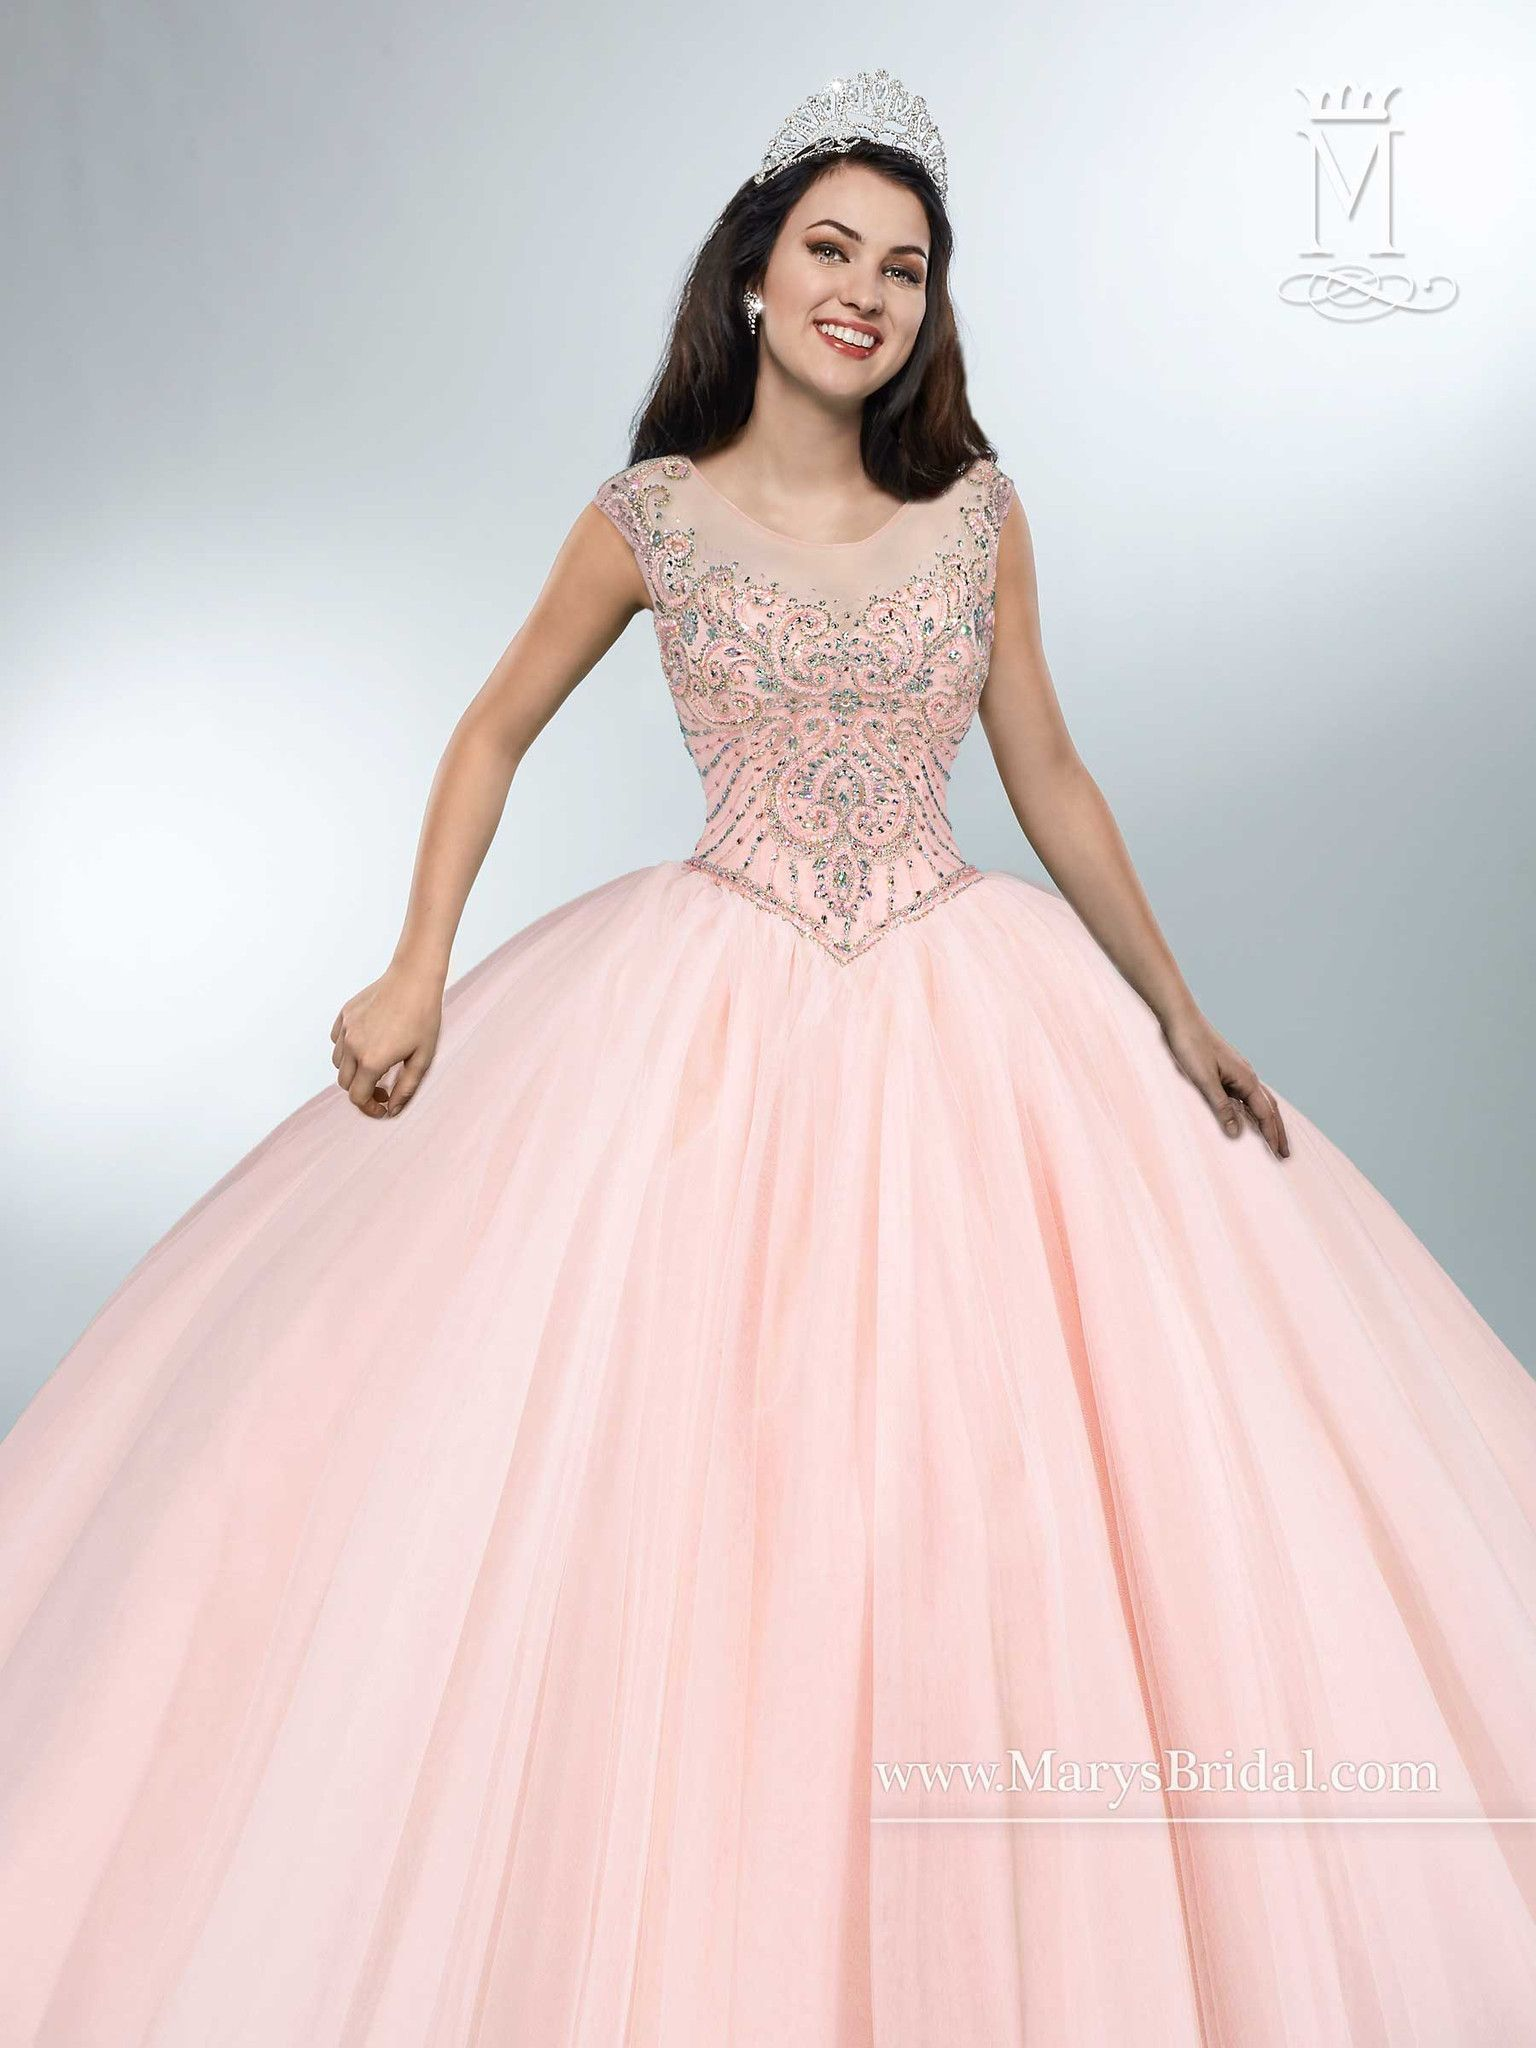 183d27faf3c Create amazing memories in a Mary s Bridal Beloving Collection Quinceanera  Dress Style 4694 at your Sweet 15 party or at any formal event.